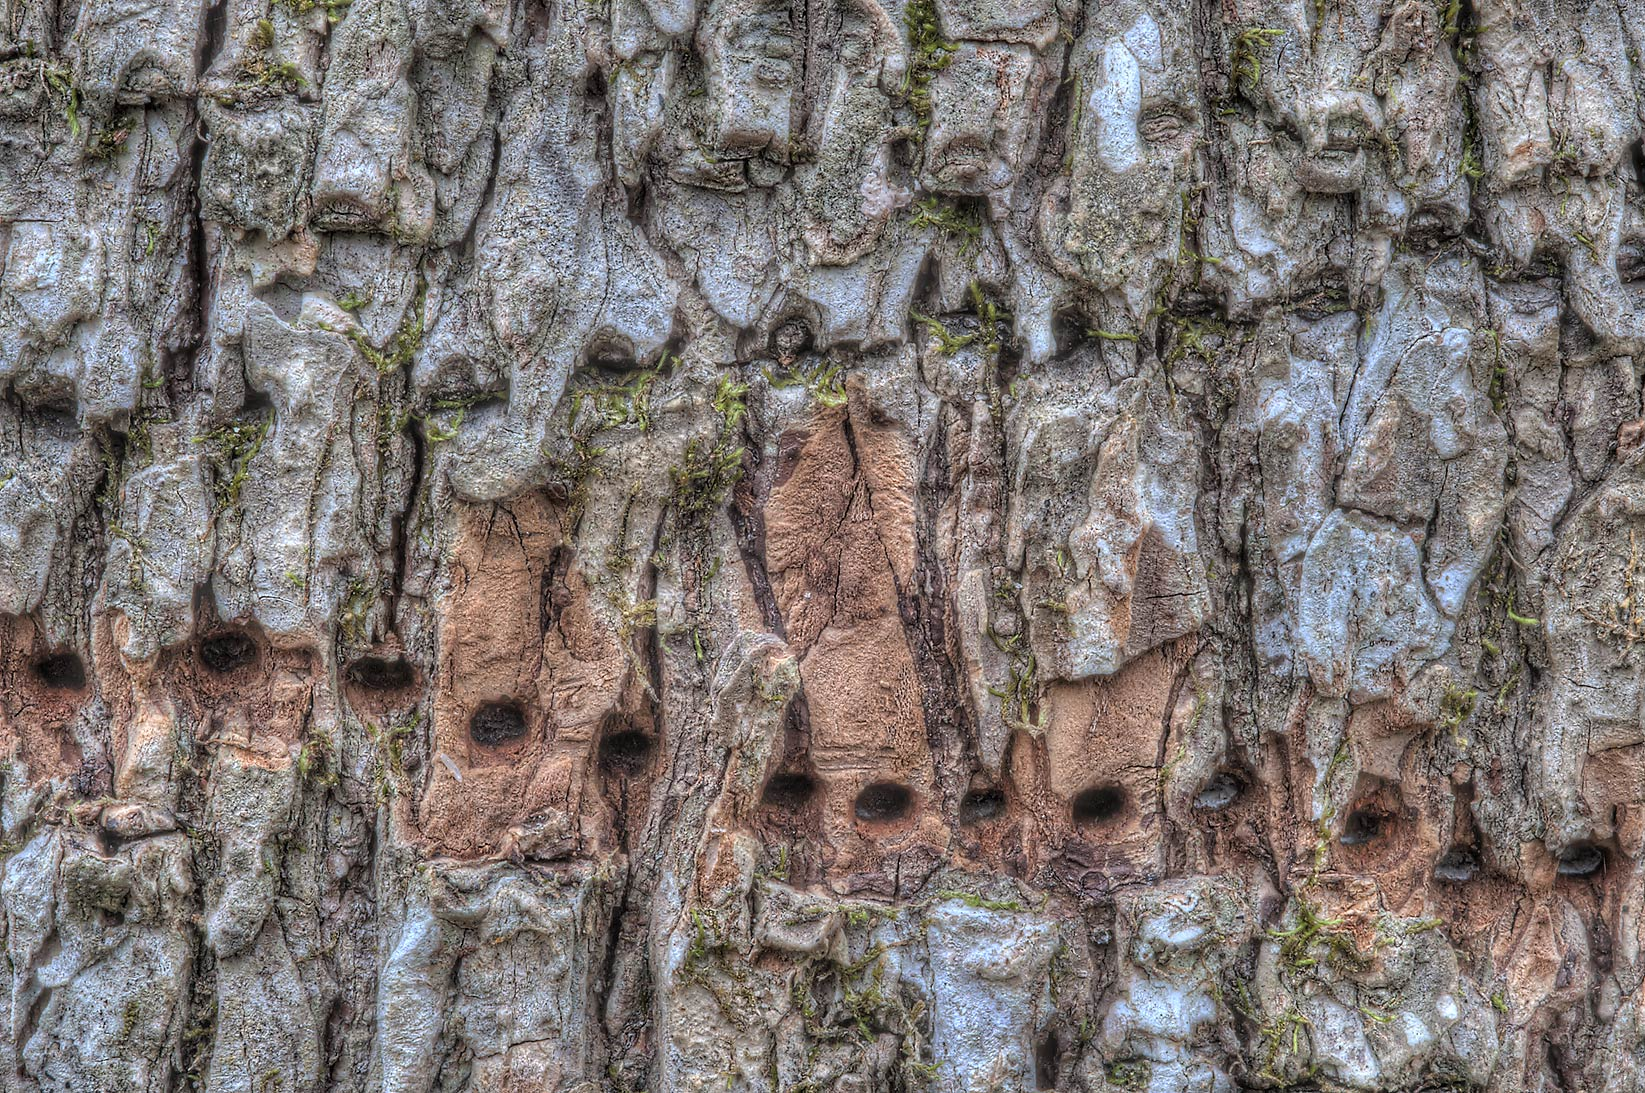 Rows of fresh and old sapsucker holes on tree...Creek Park. College Station, Texas